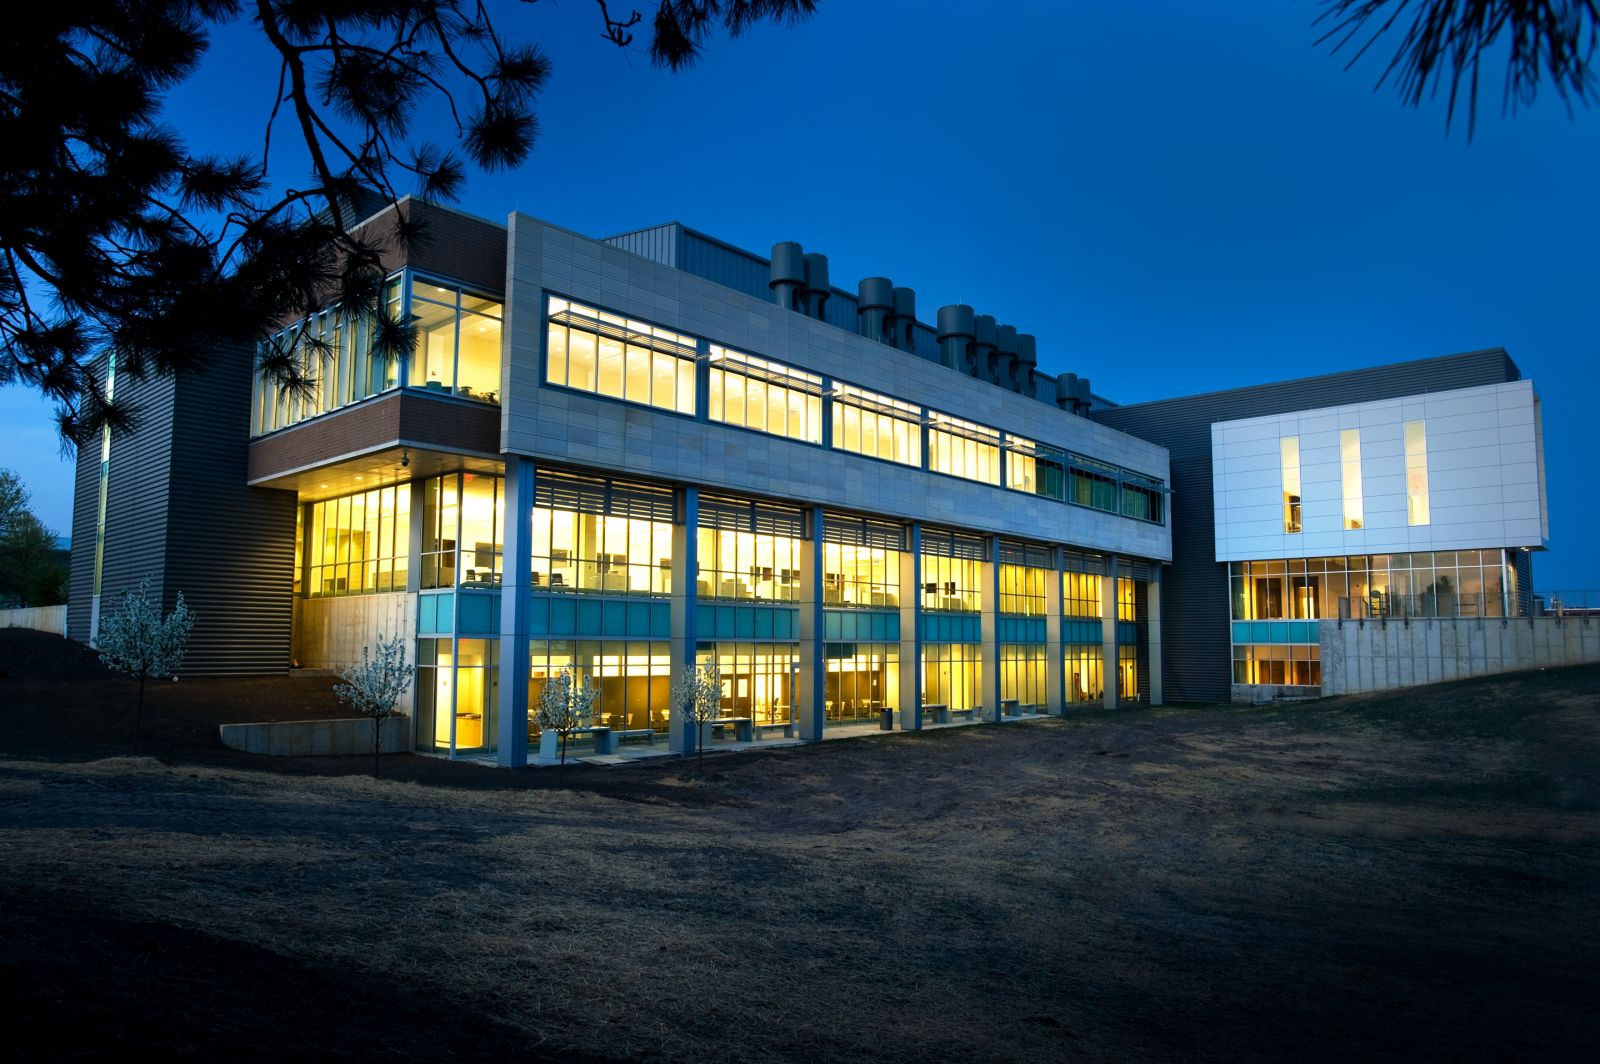 State Hygienic lab building at night